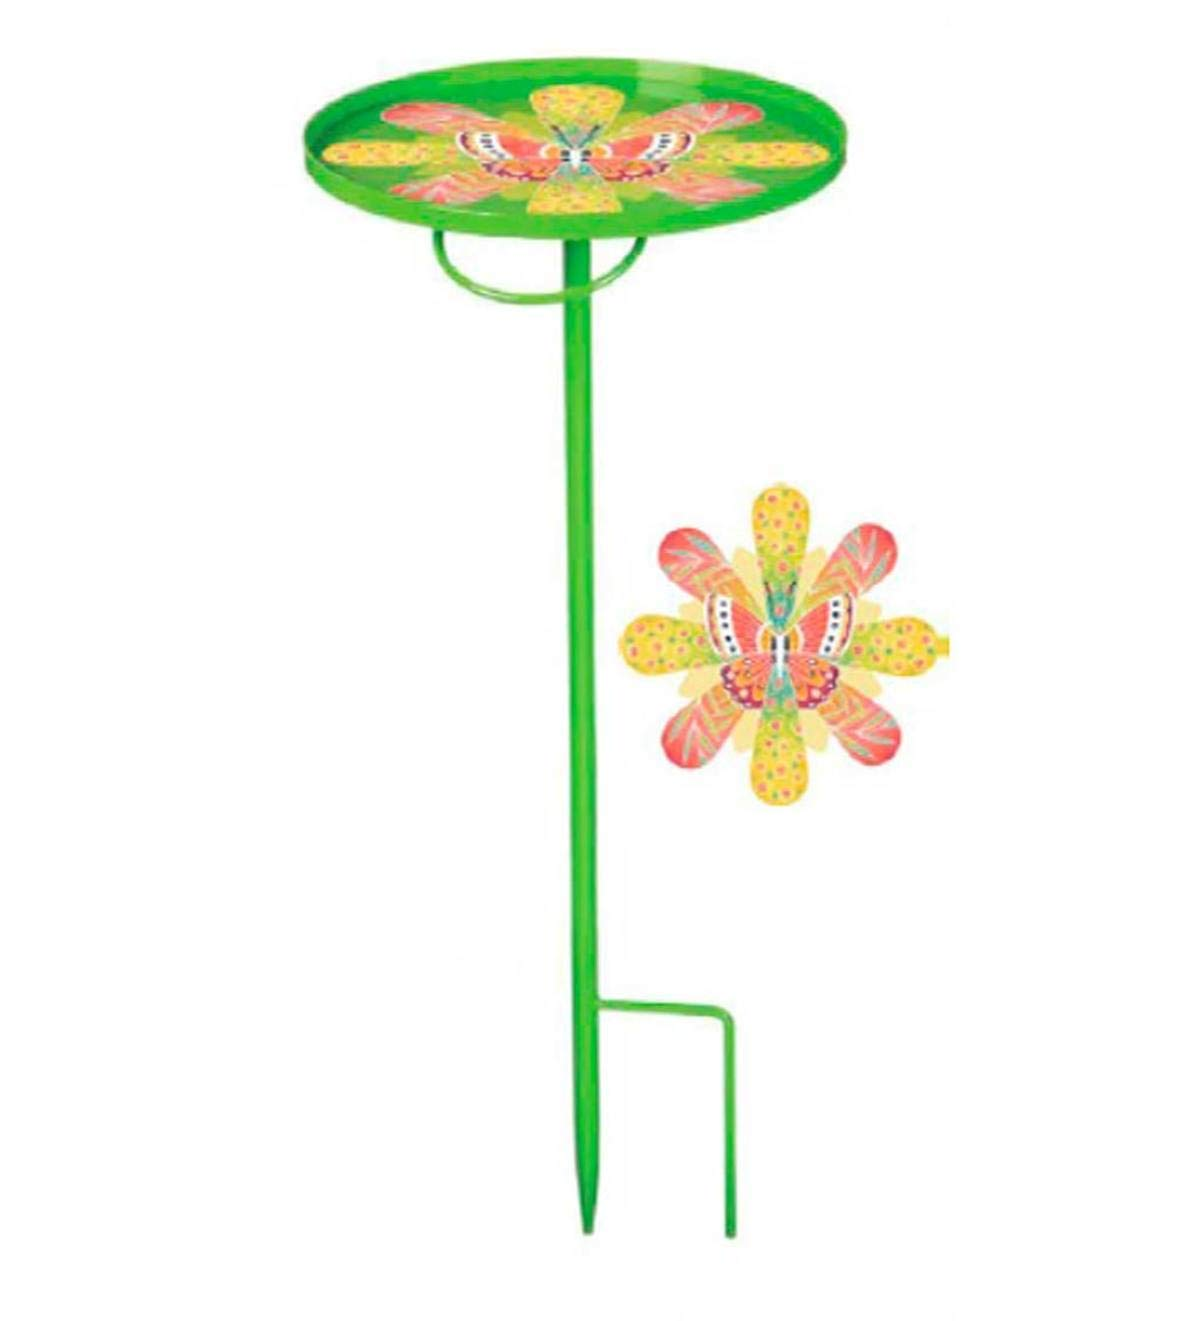 Wind & Weather Green Portable Garden Stake Table - 12 Dia. x 28 H by Wind & Weather